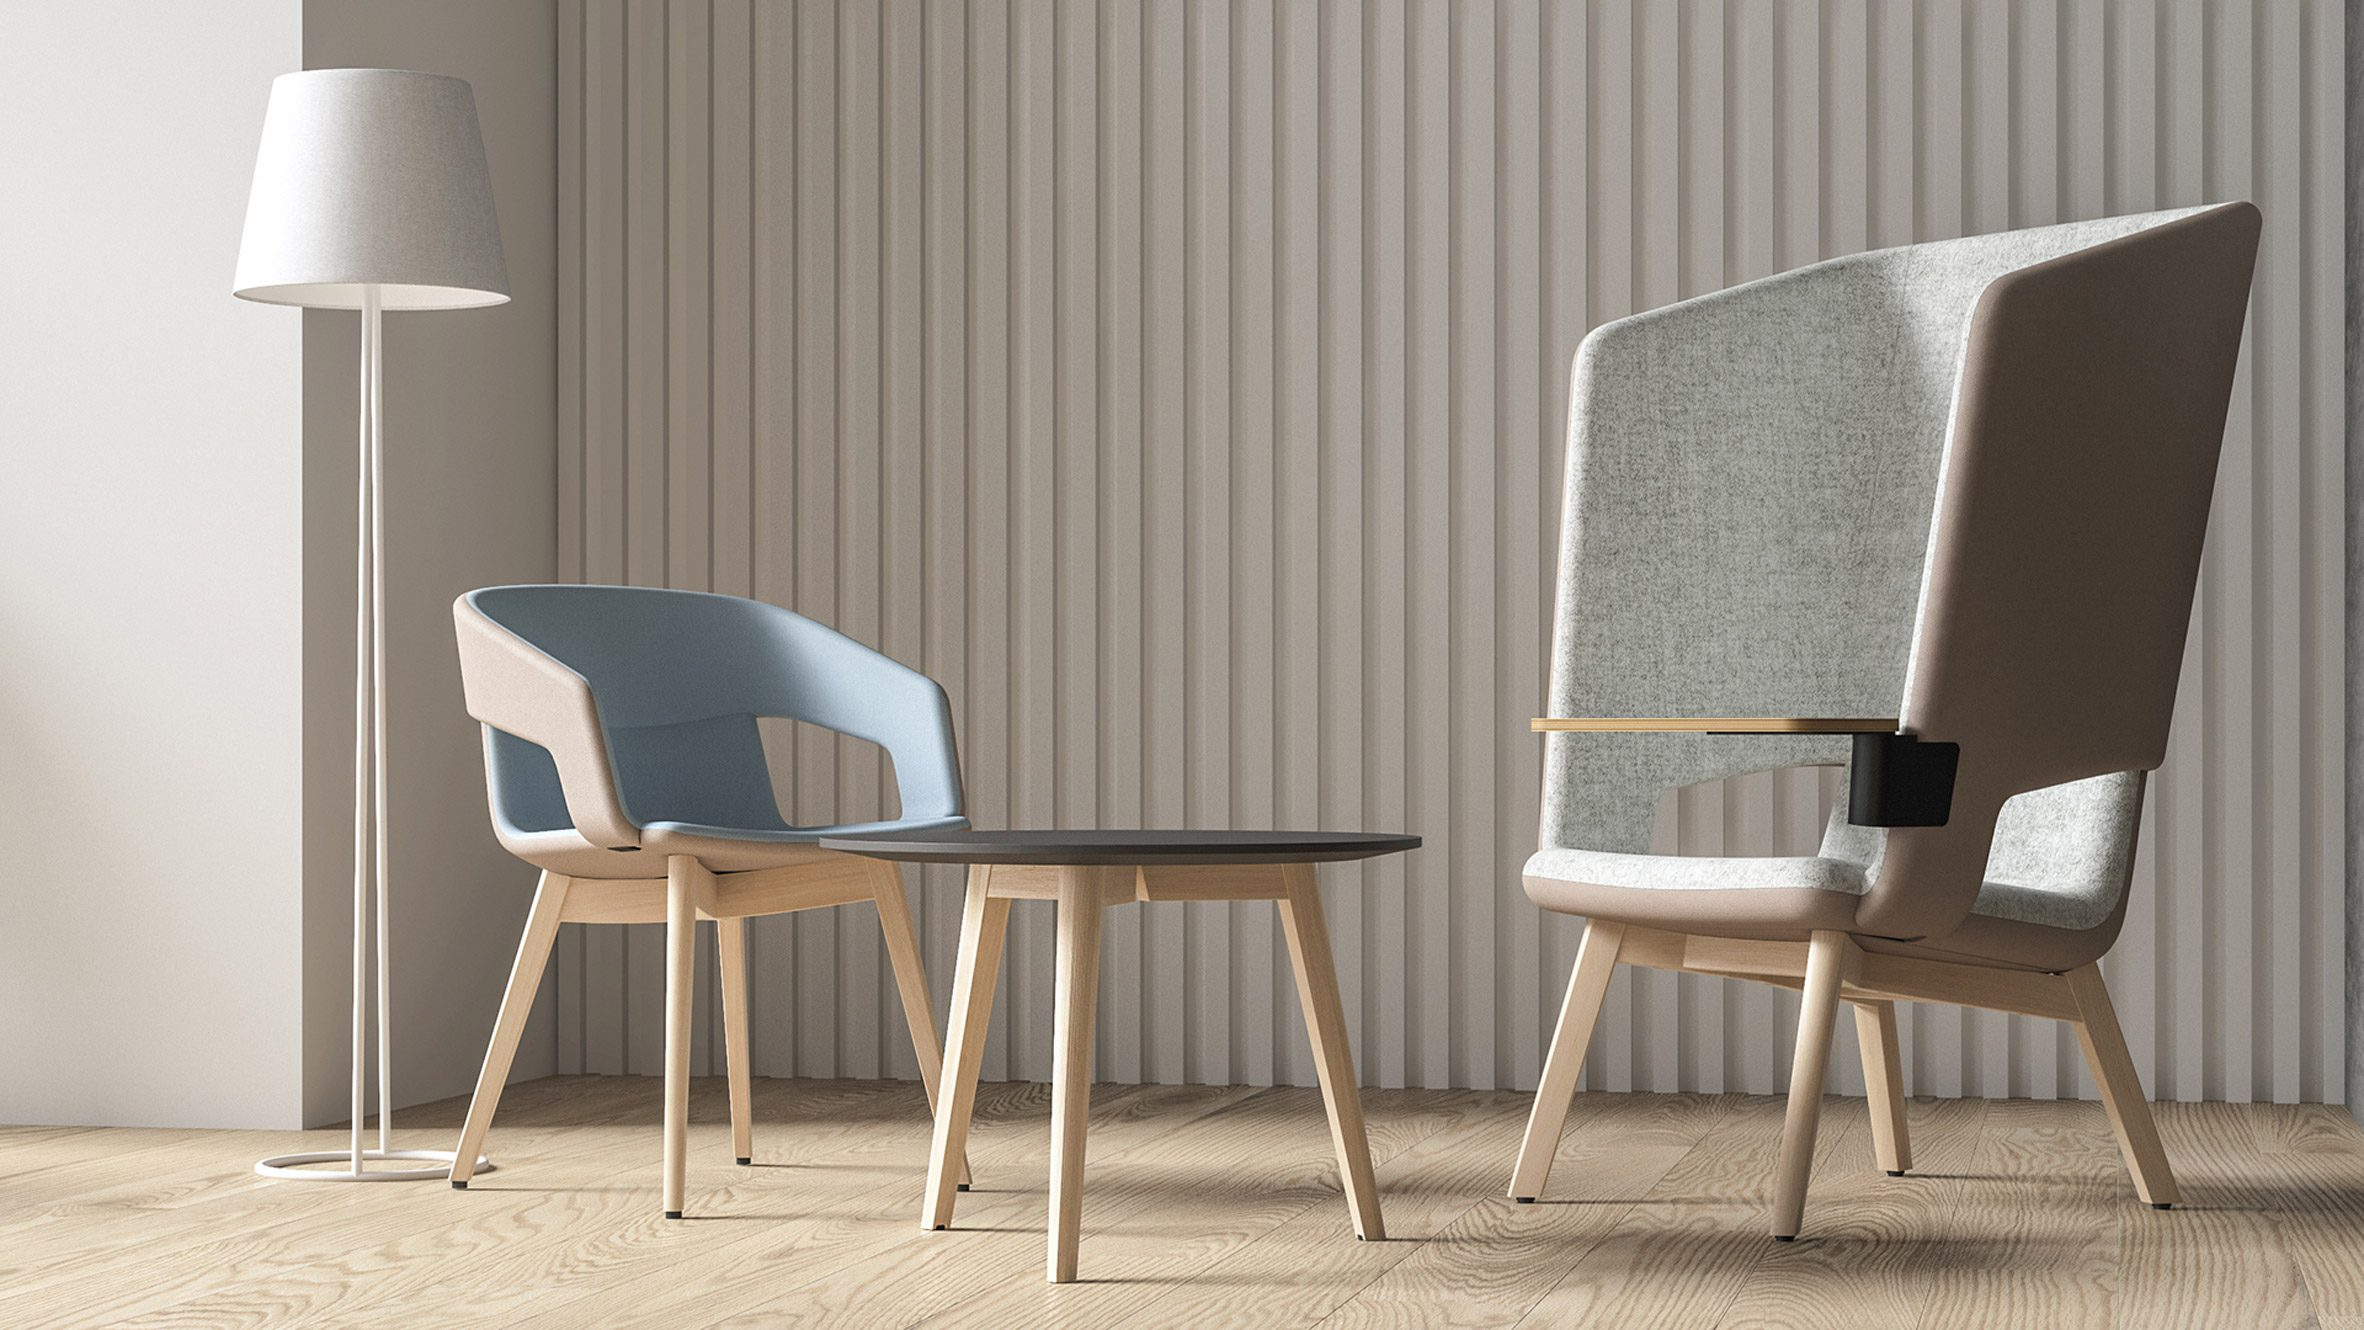 Twist & Sit Soft lounge chairs with high and low backs by Christina Strand and Niels Hvass